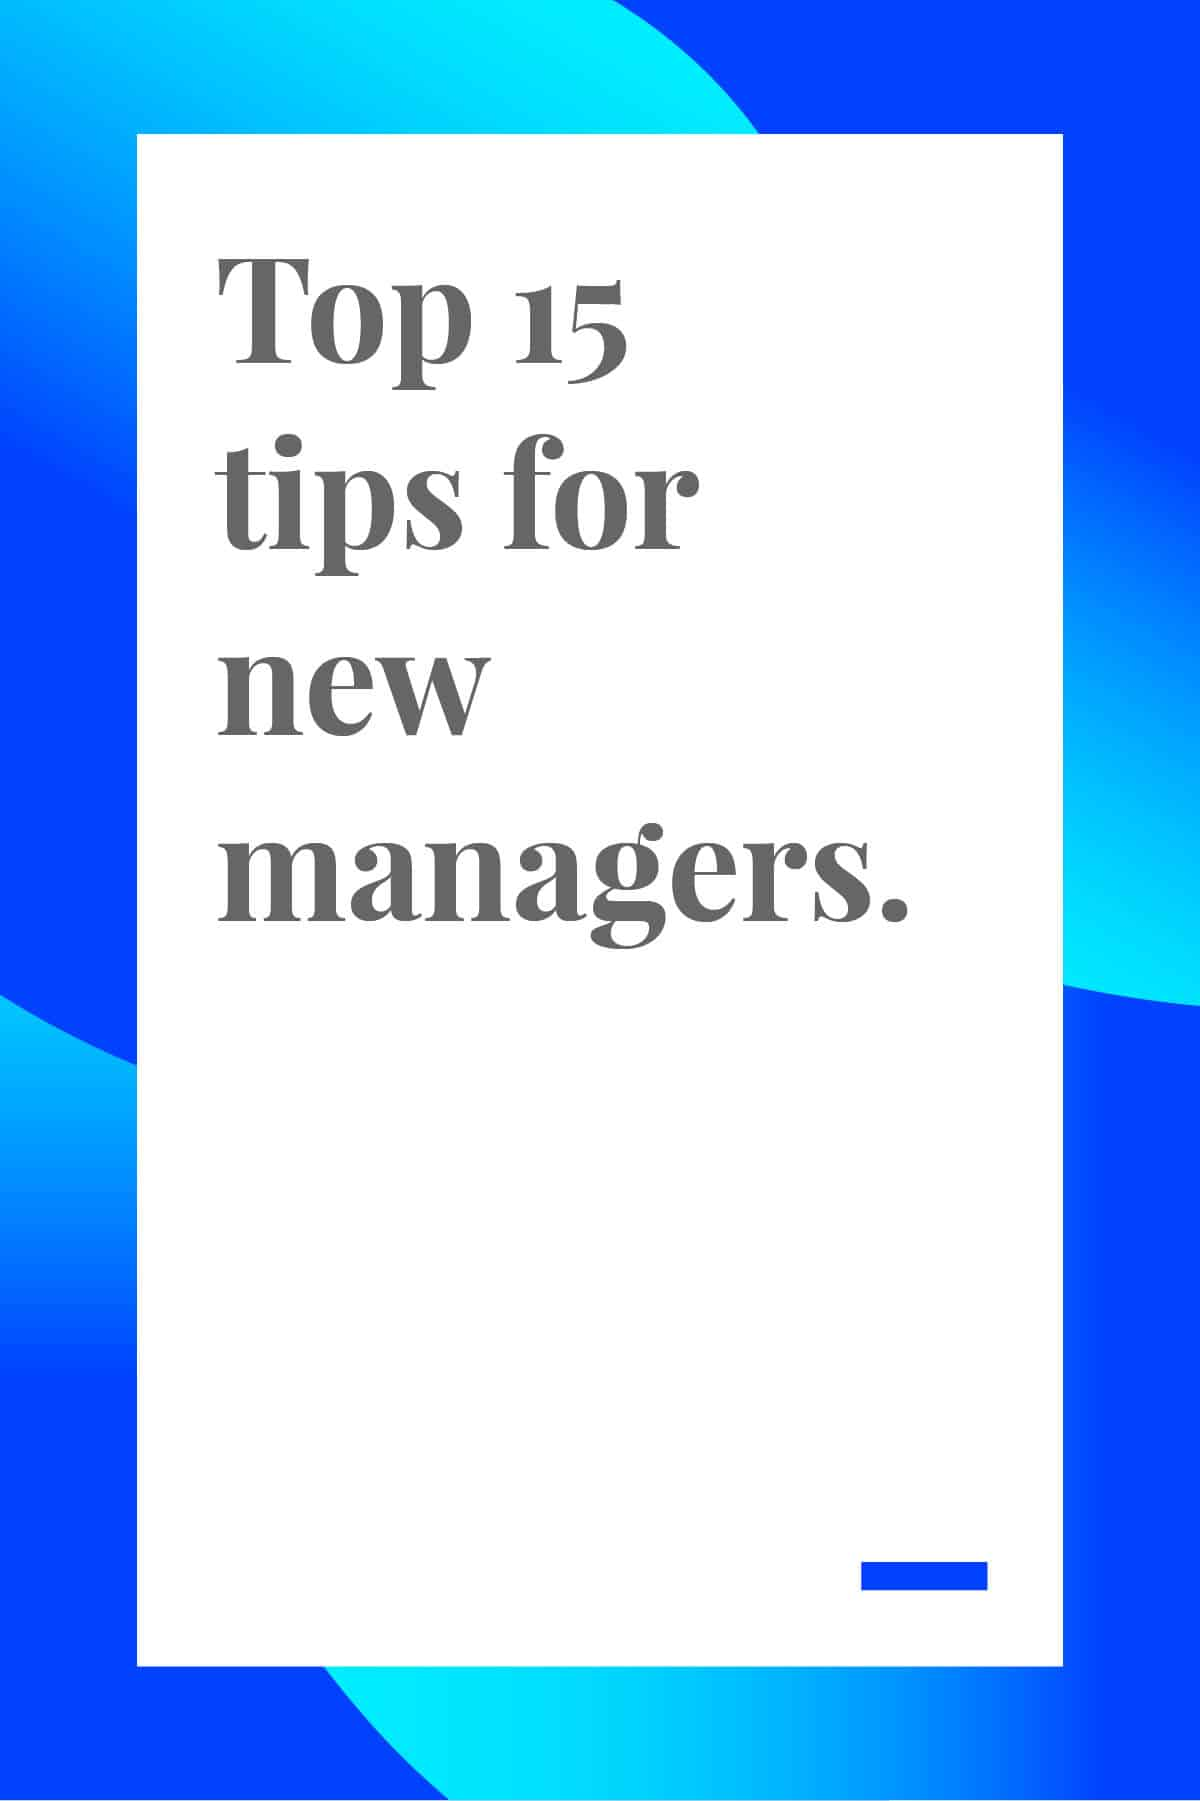 Are you a new manager? If so, click through now and read these 15 tips for new managers. Covering everything from leading a team to planning out your projects, this article will set you up for success. #managertips #leadership